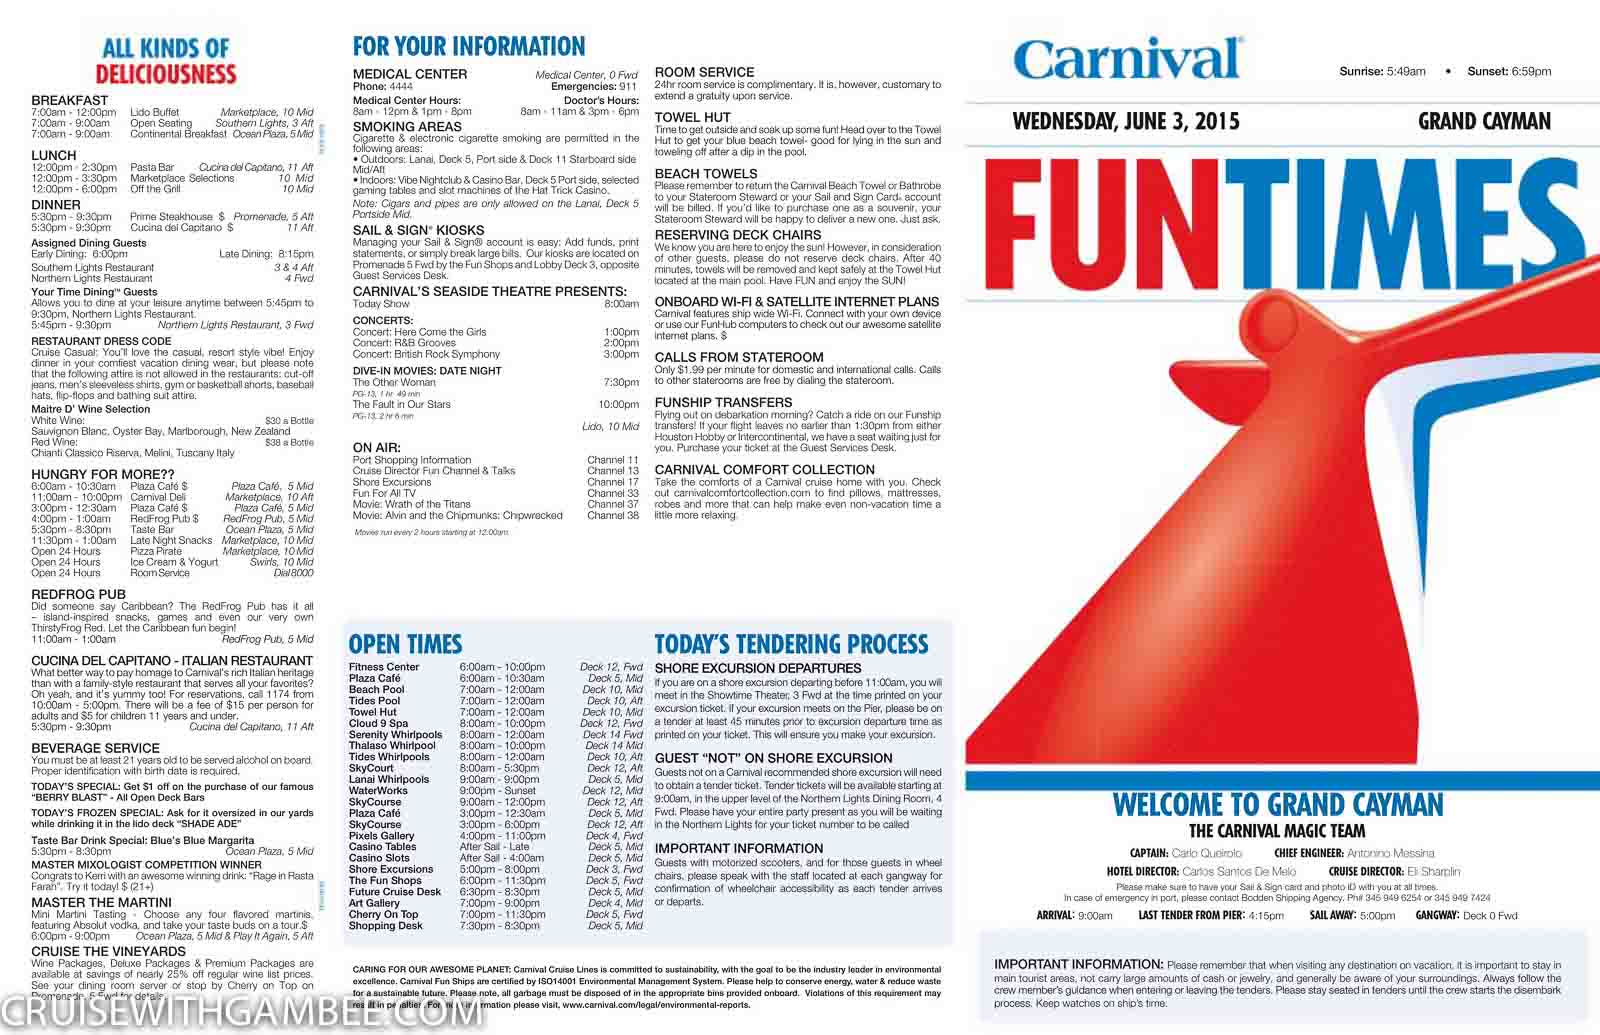 Carnival Magic Funtimes-8